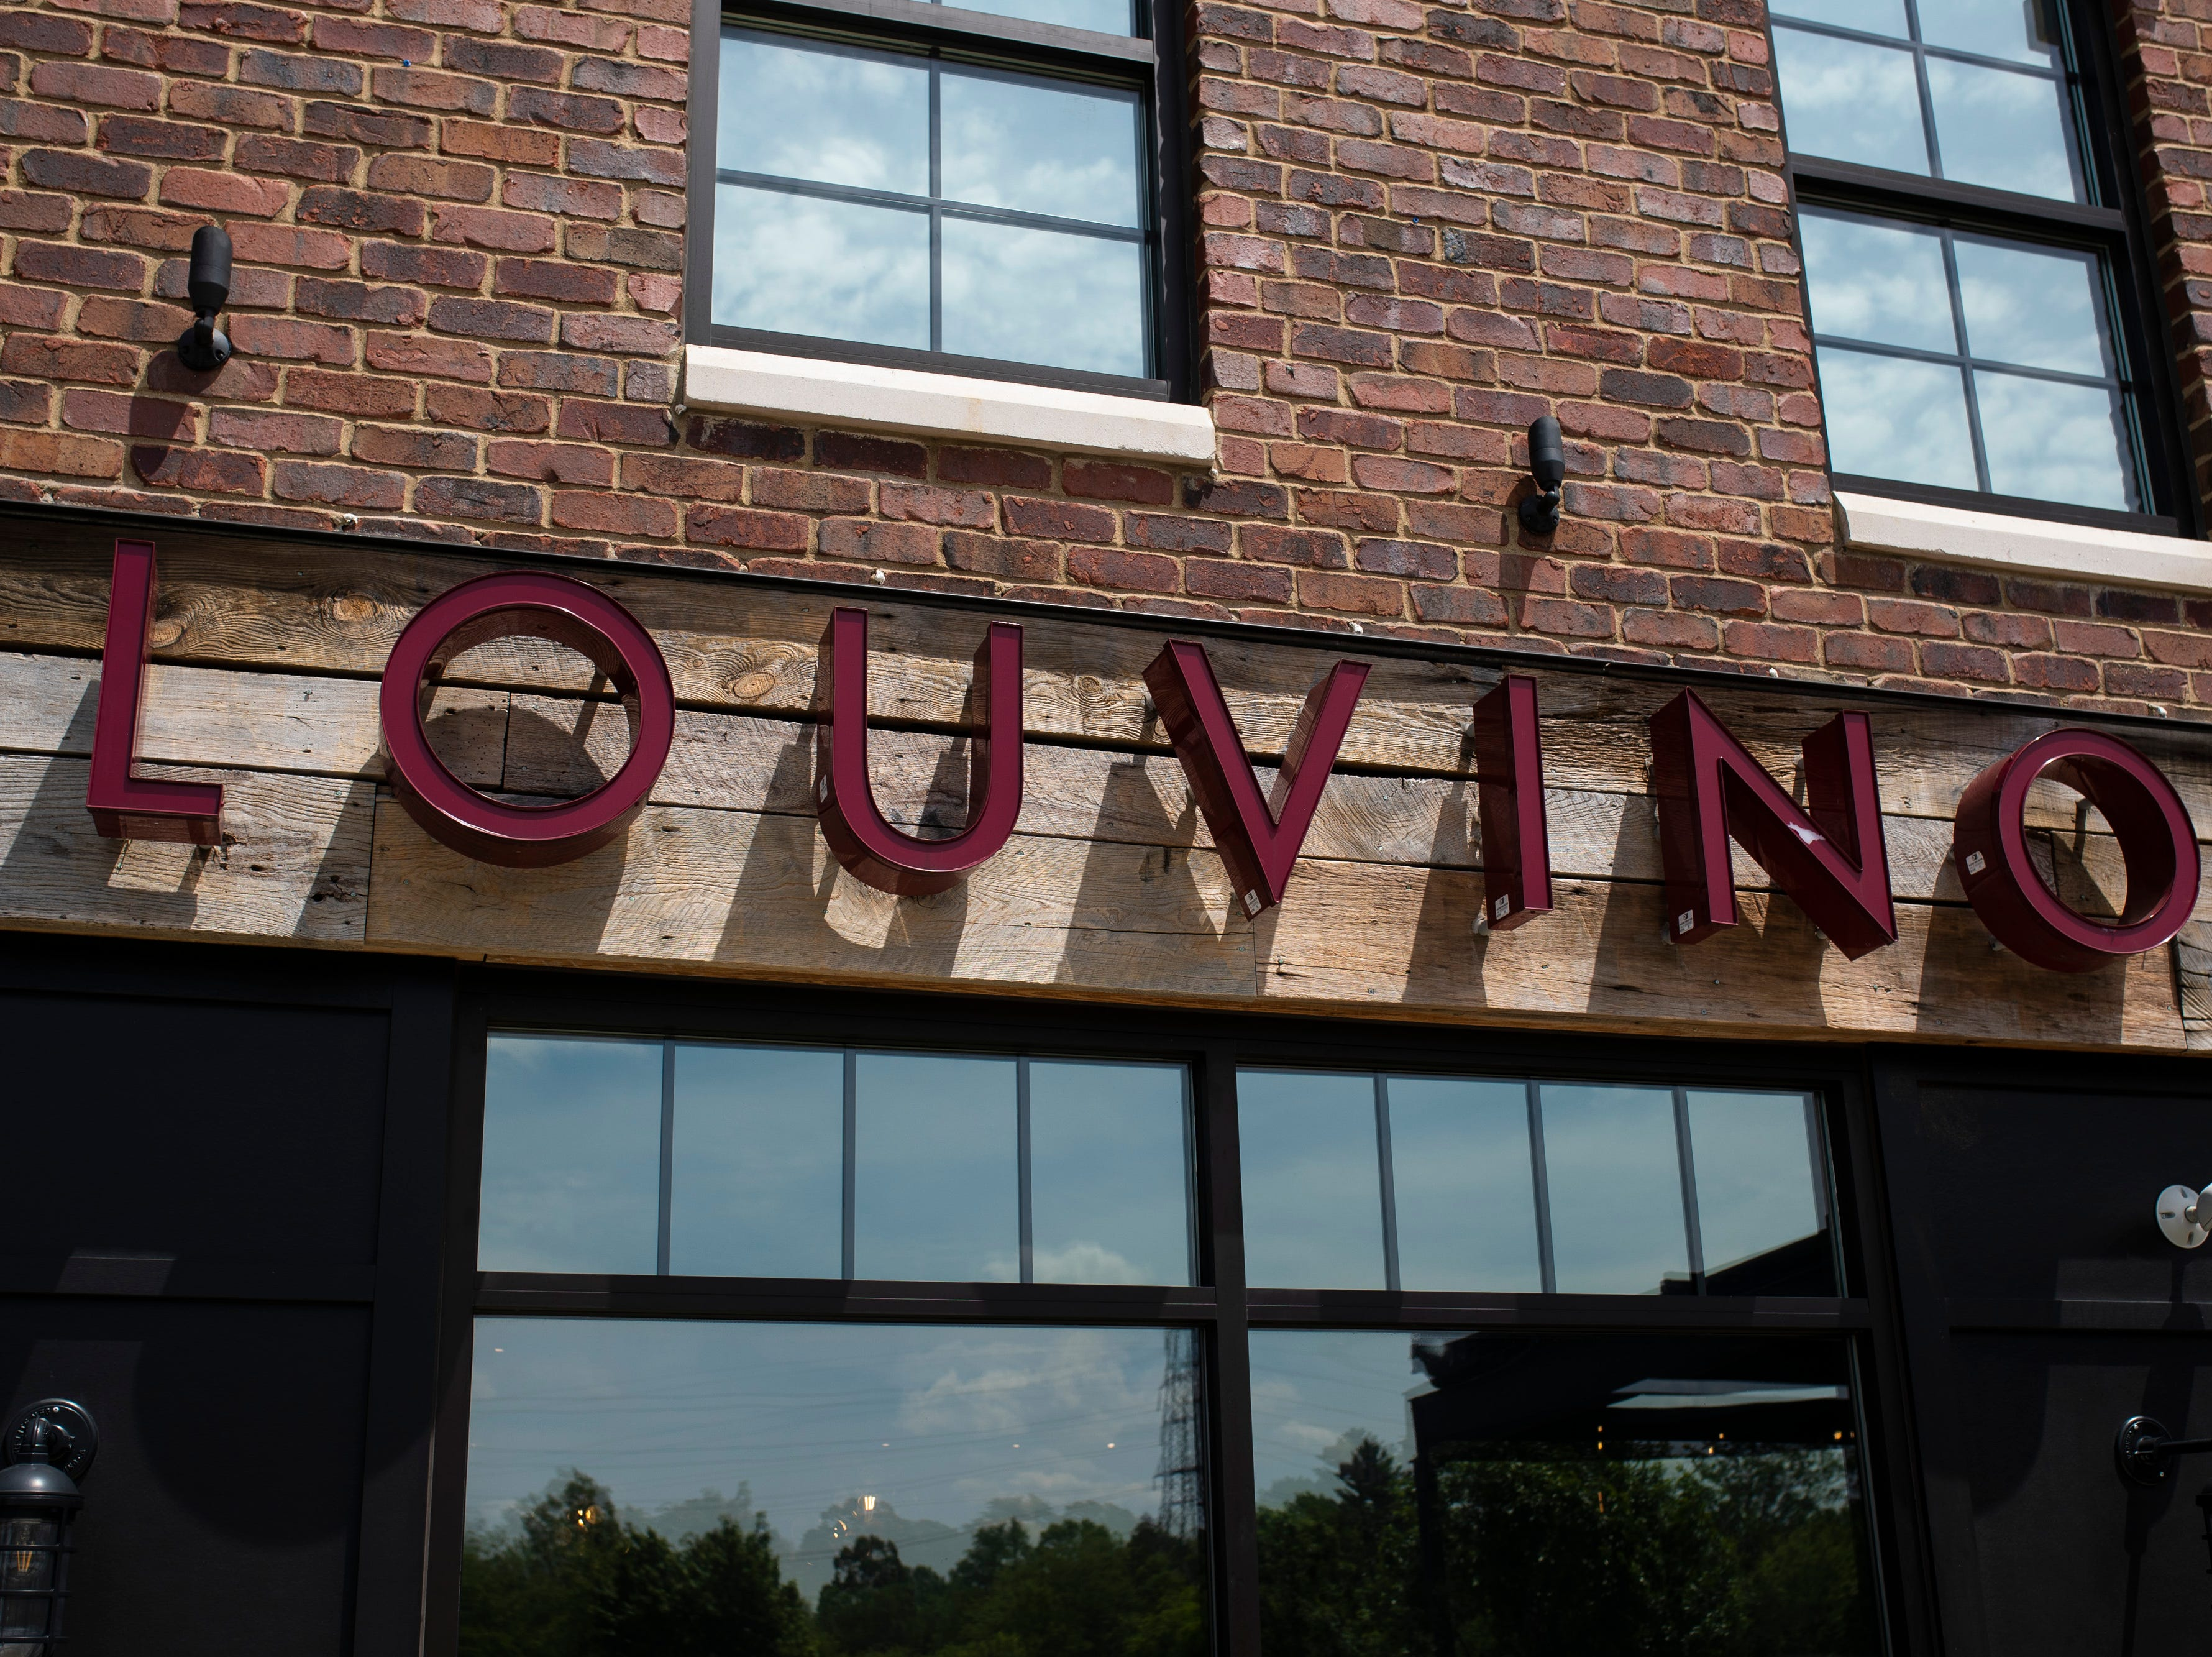 Outside of Louvino in the Middletown neighborhood. May 8, 2019